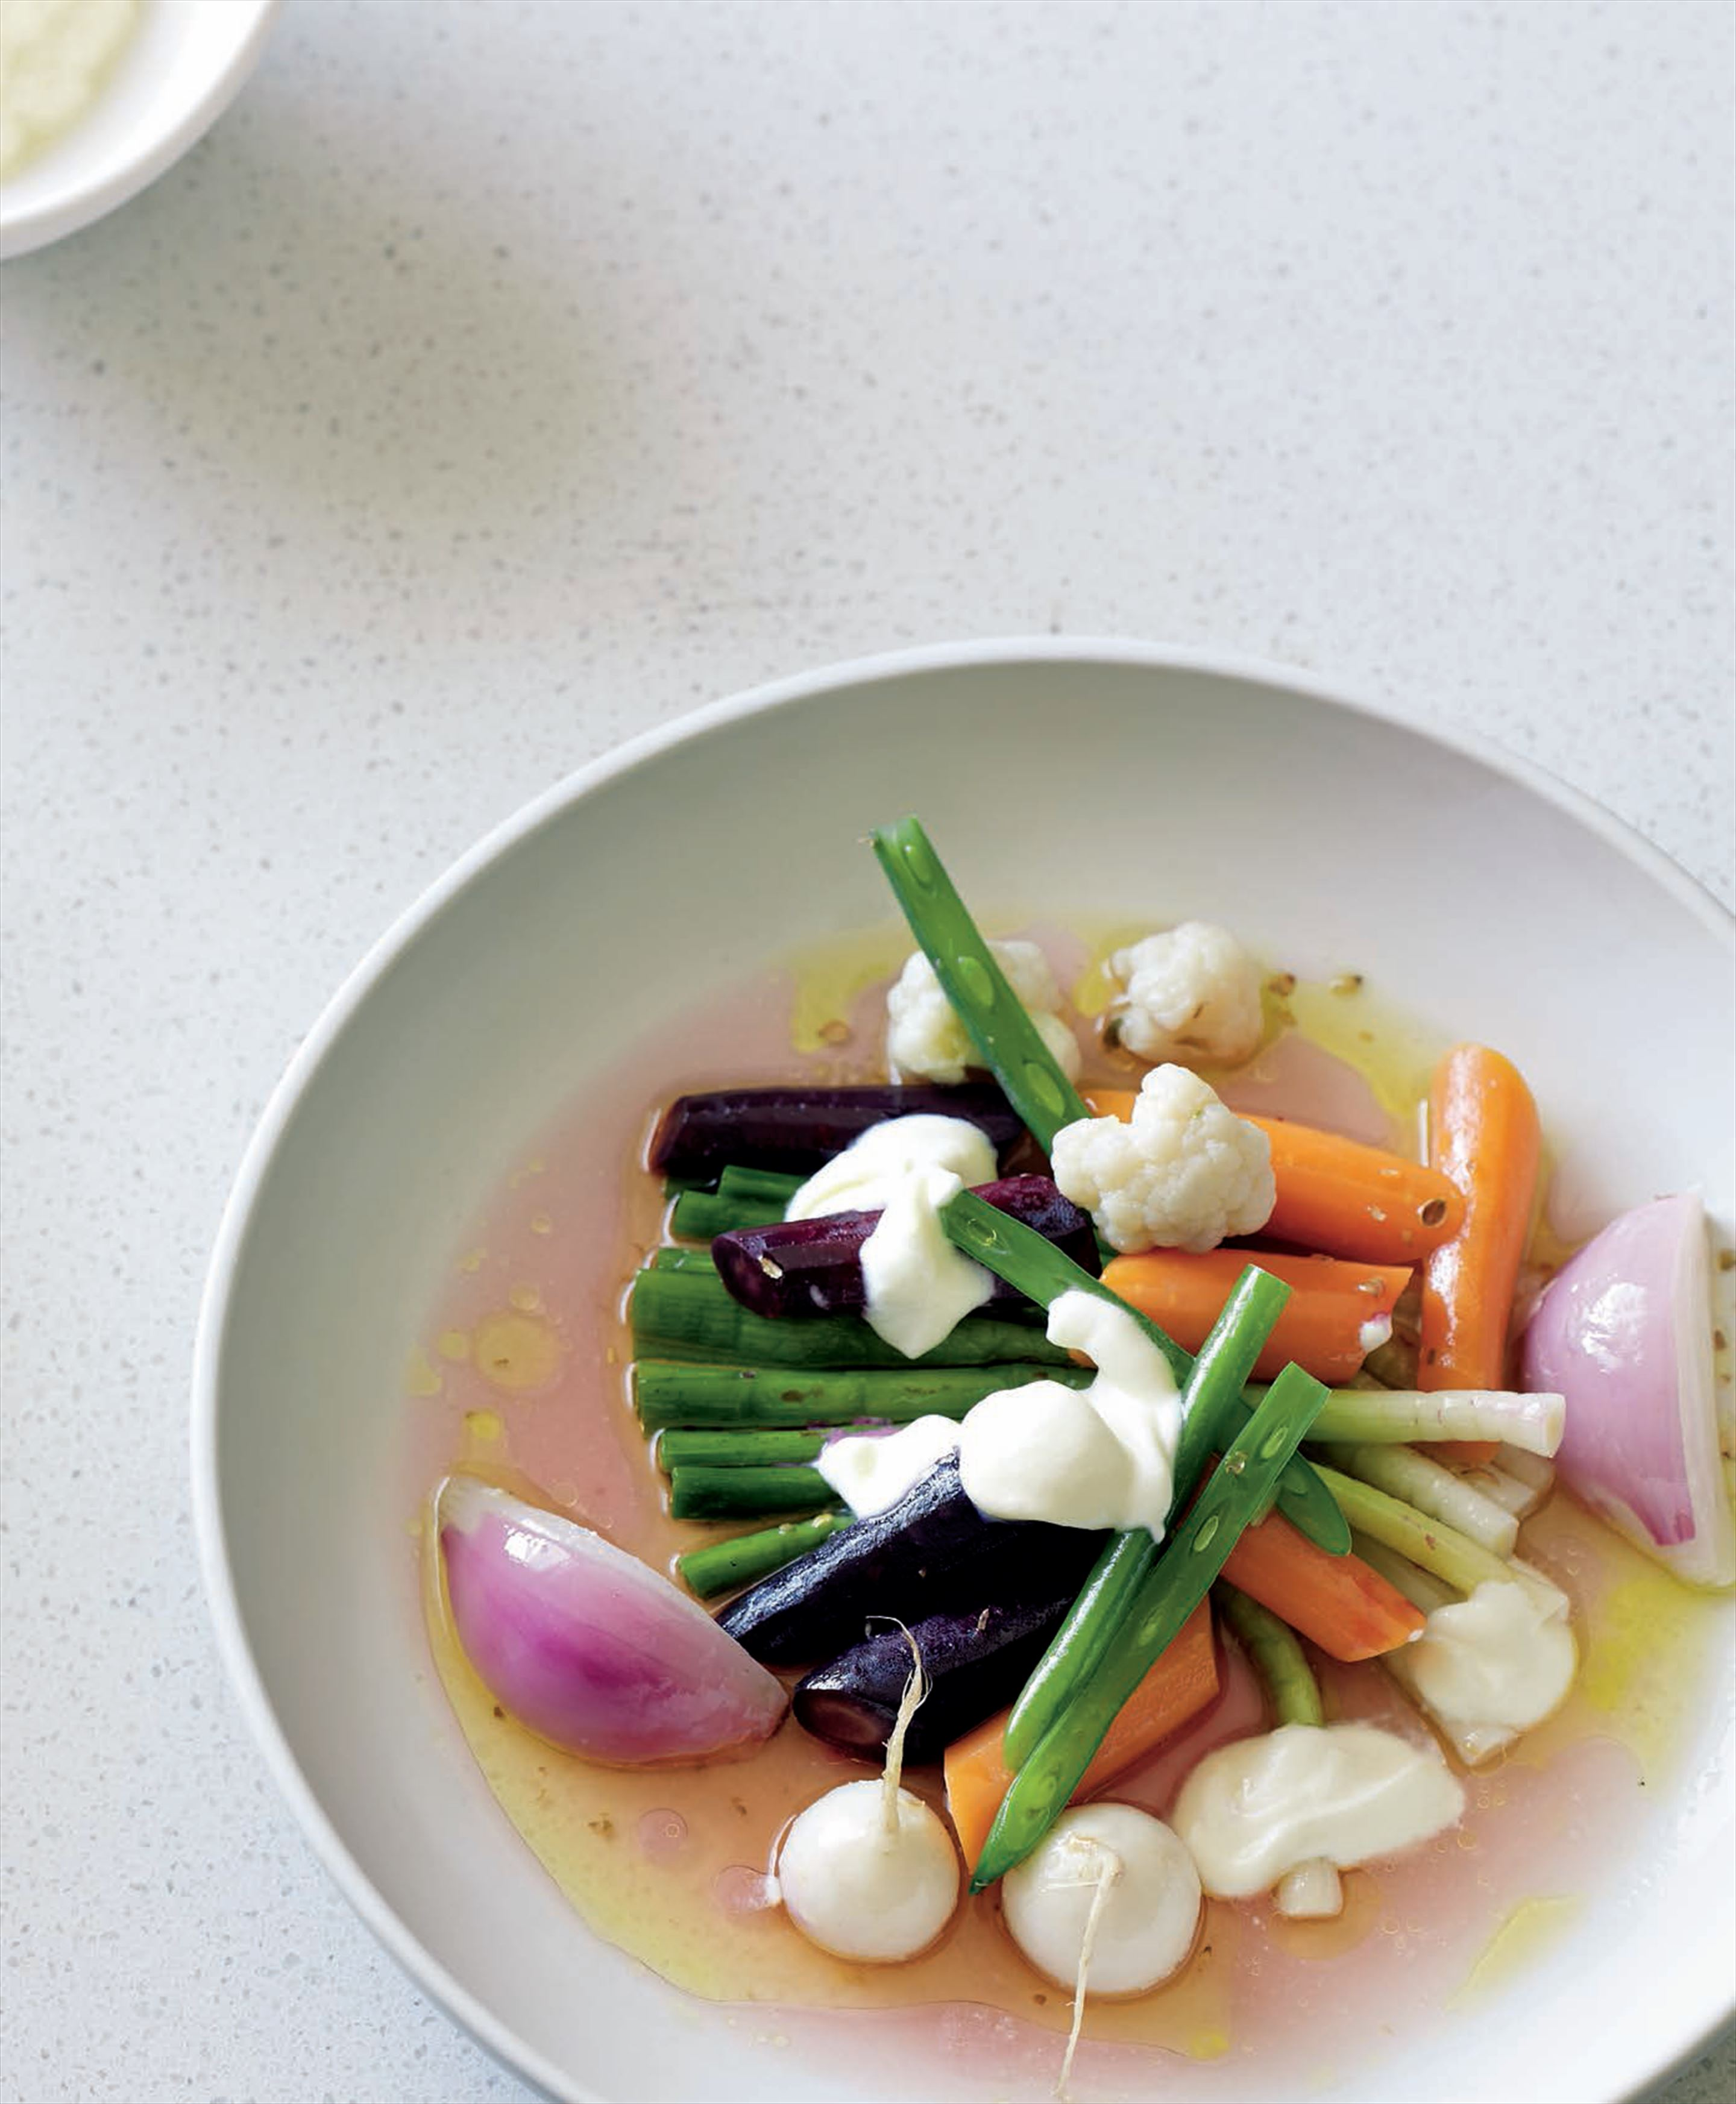 Monks' salad with garlicky dressing